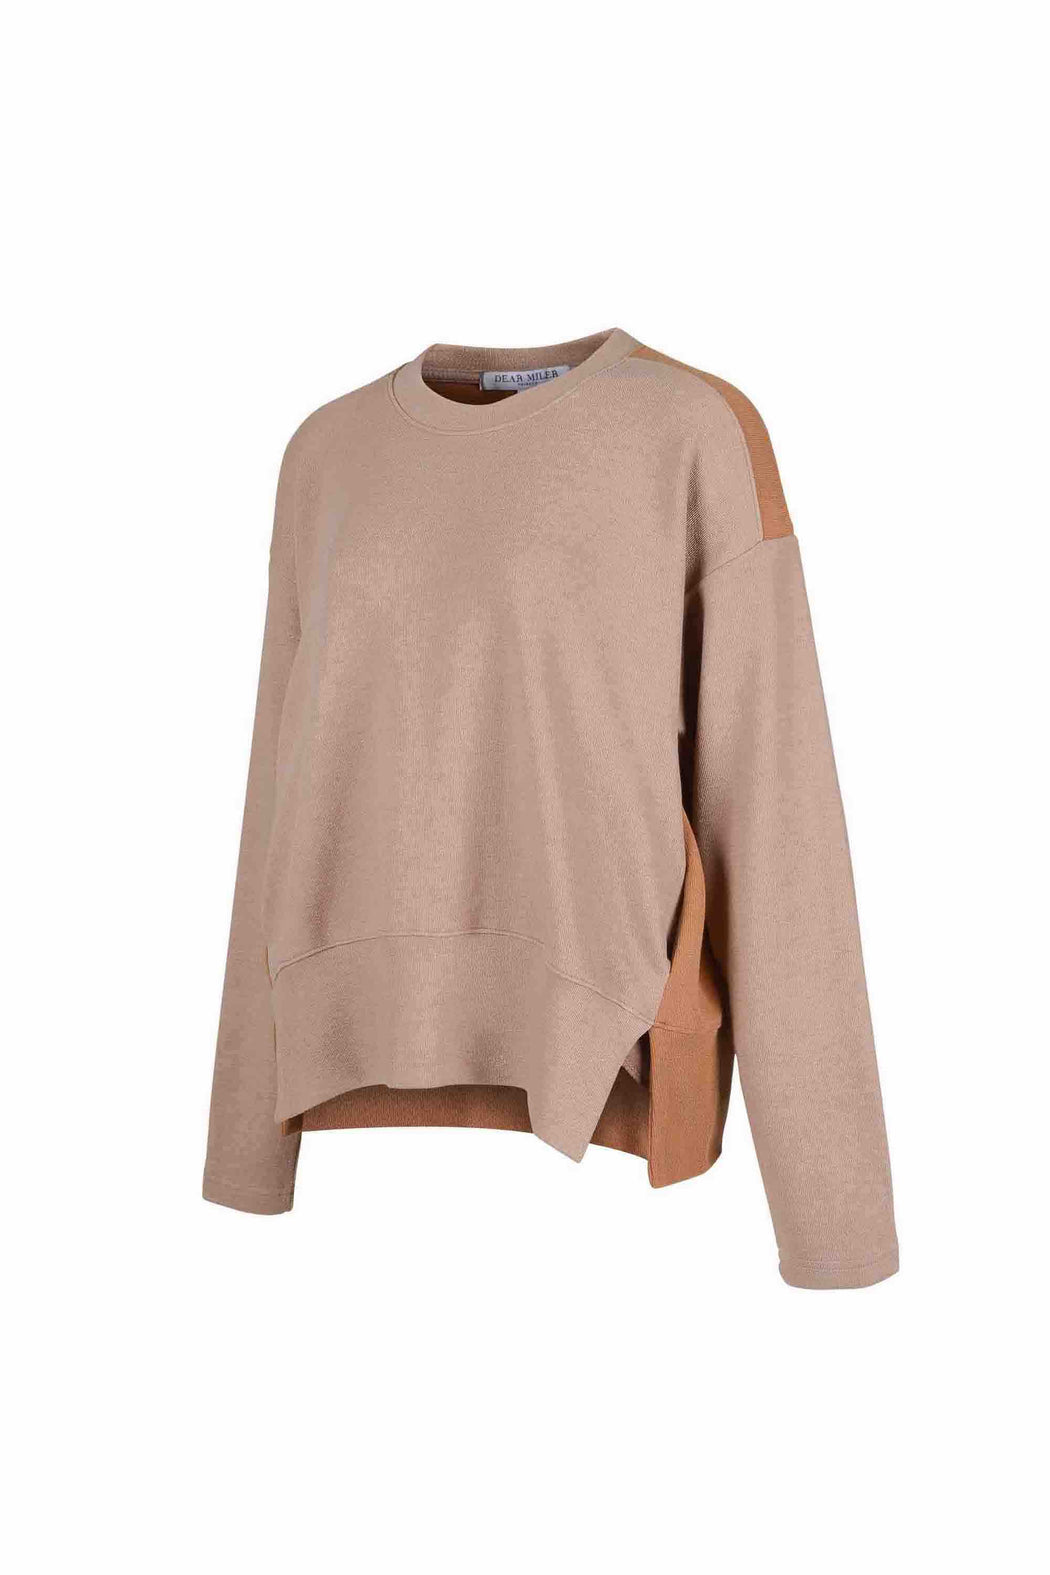 Side view of Women Fabric Block Sweater in light brown/caramel